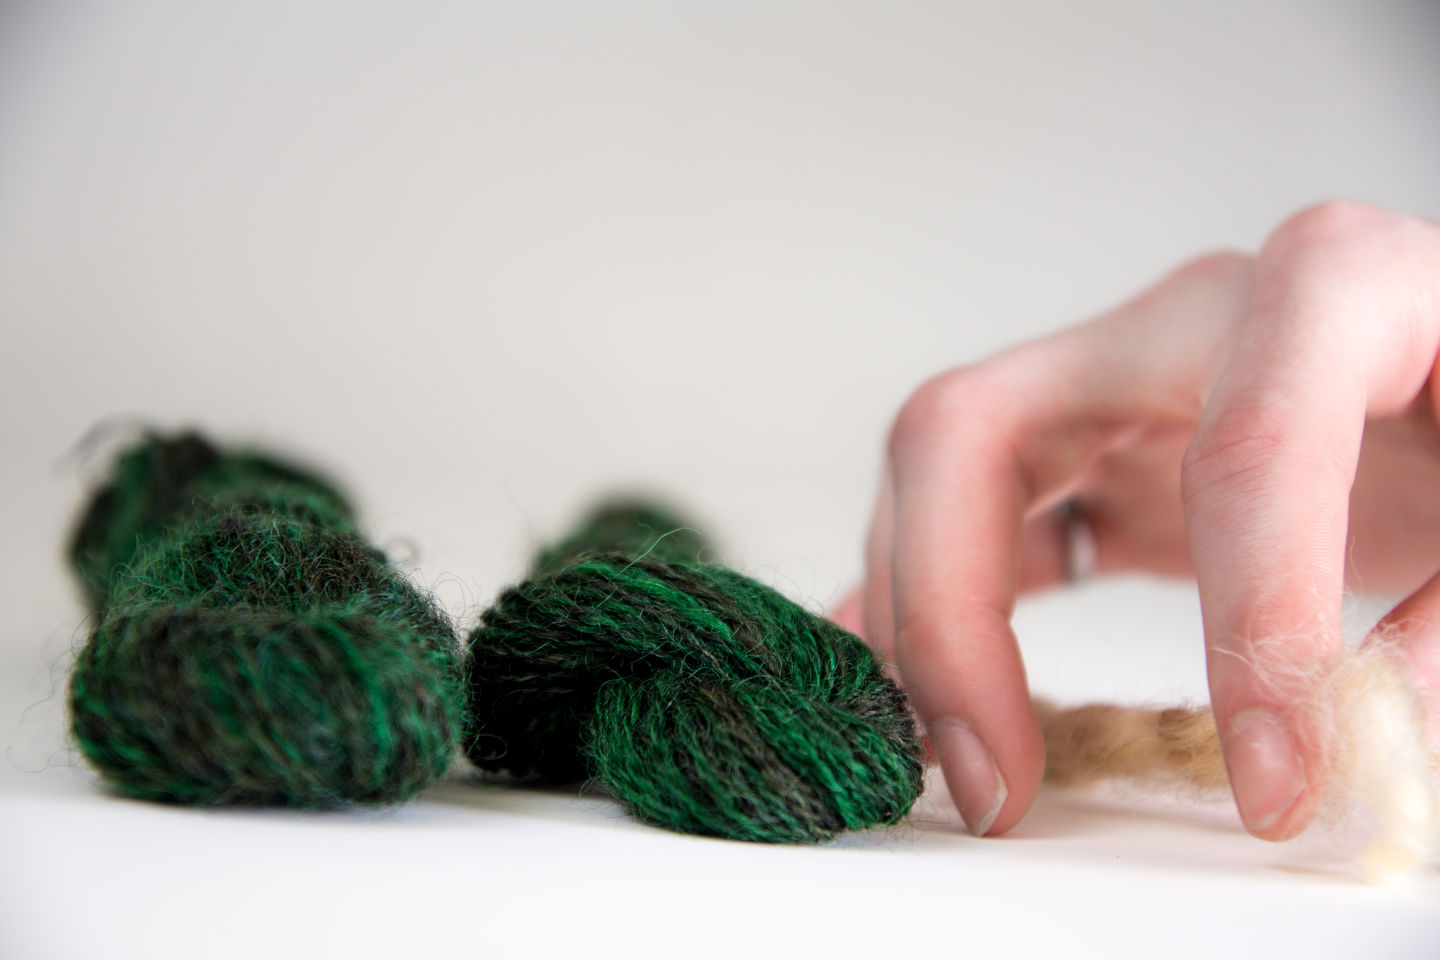 RNSF:regenerating nature smart fabric, weaved wool samples, researcher Julie-Anne-Gandier, photo Valeria Azovskaya